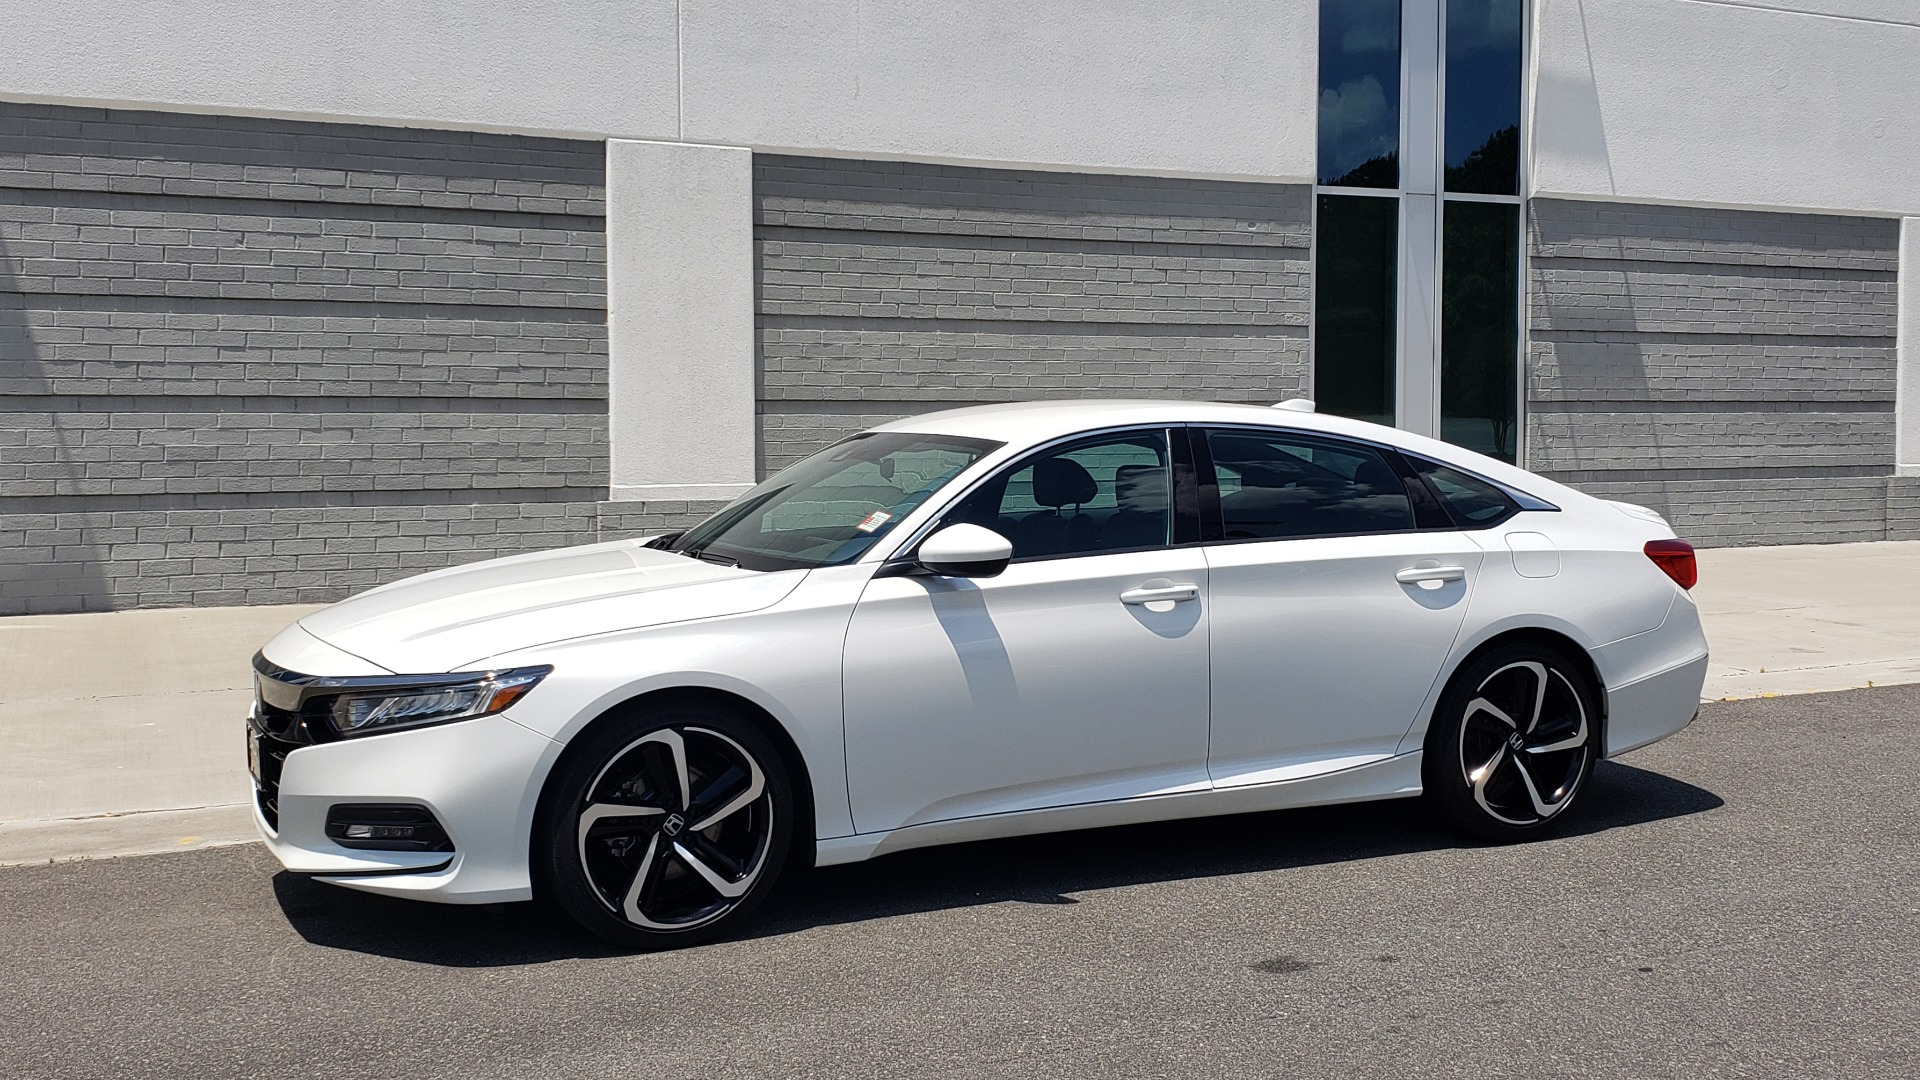 Used 2018 Honda ACCORD SEDAN SPORT 1.5T / CVT TRANS / FWD / 19IN WHEELS for sale $20,995 at Formula Imports in Charlotte NC 28227 4